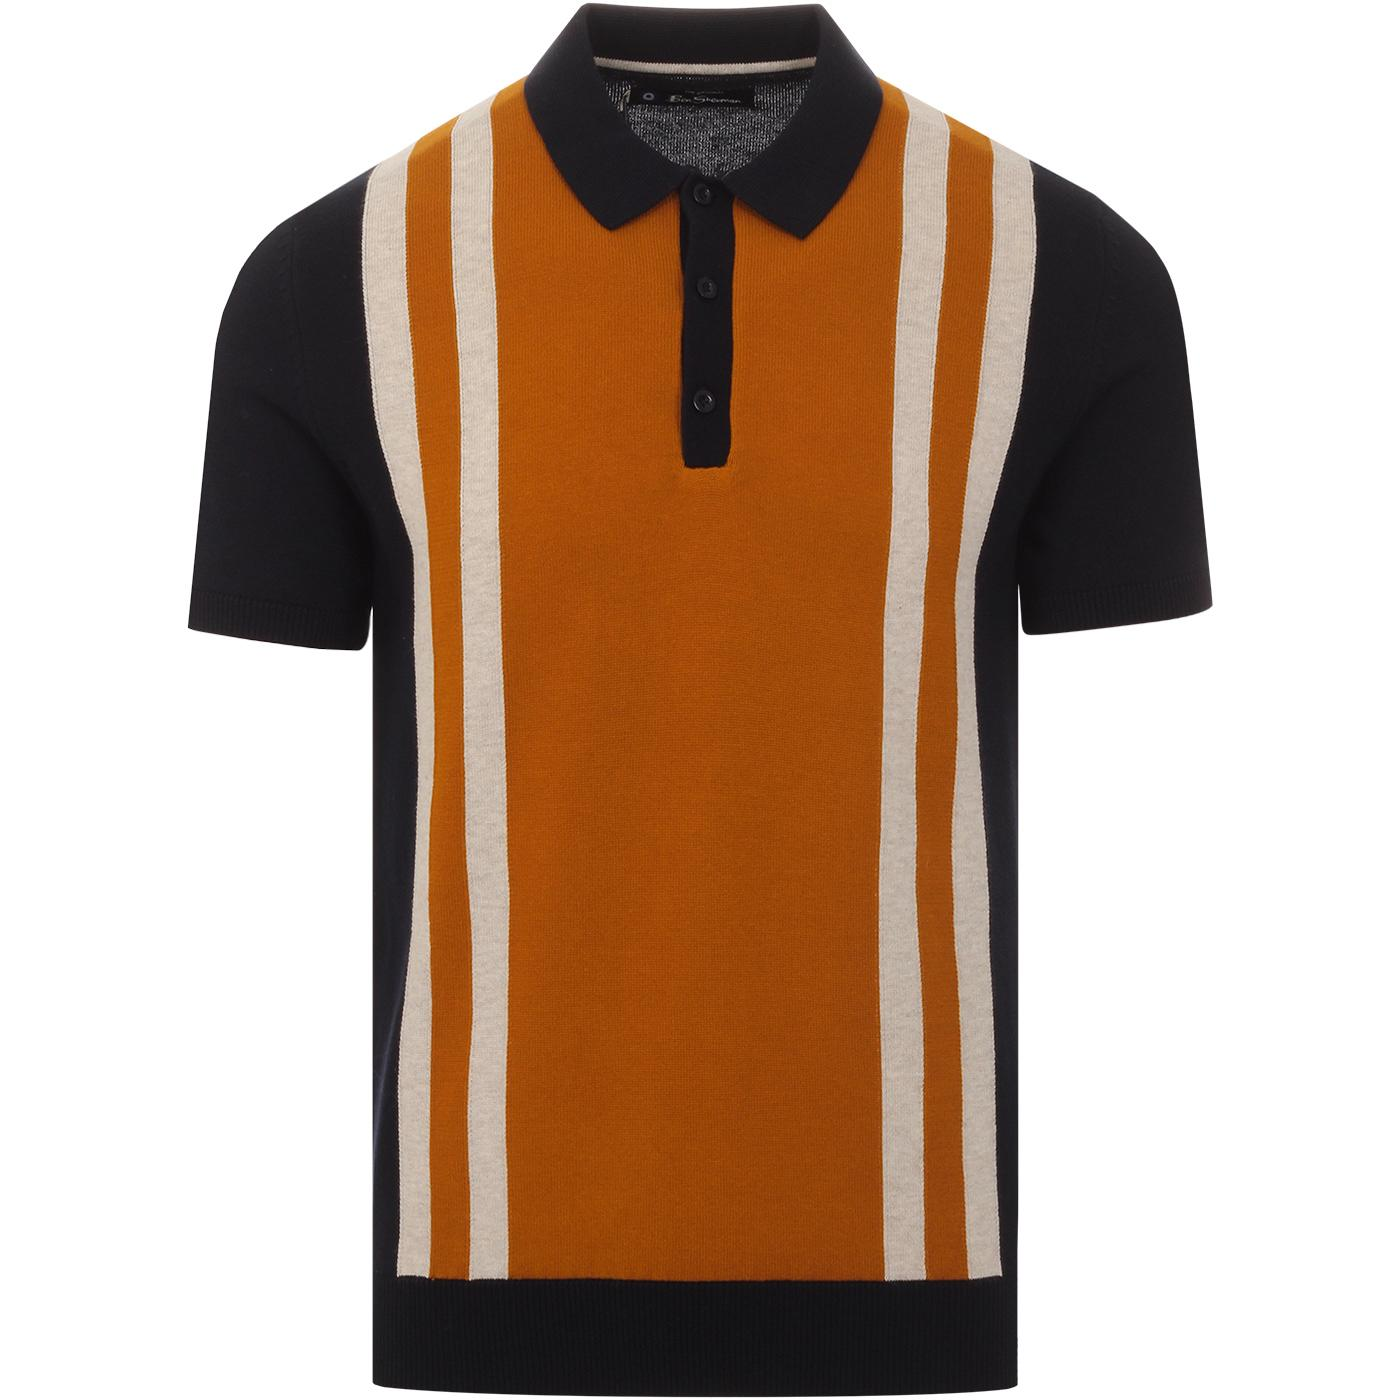 BEN SHERMAN 60s Mod Stripe Panel Knit Polo Top (N)